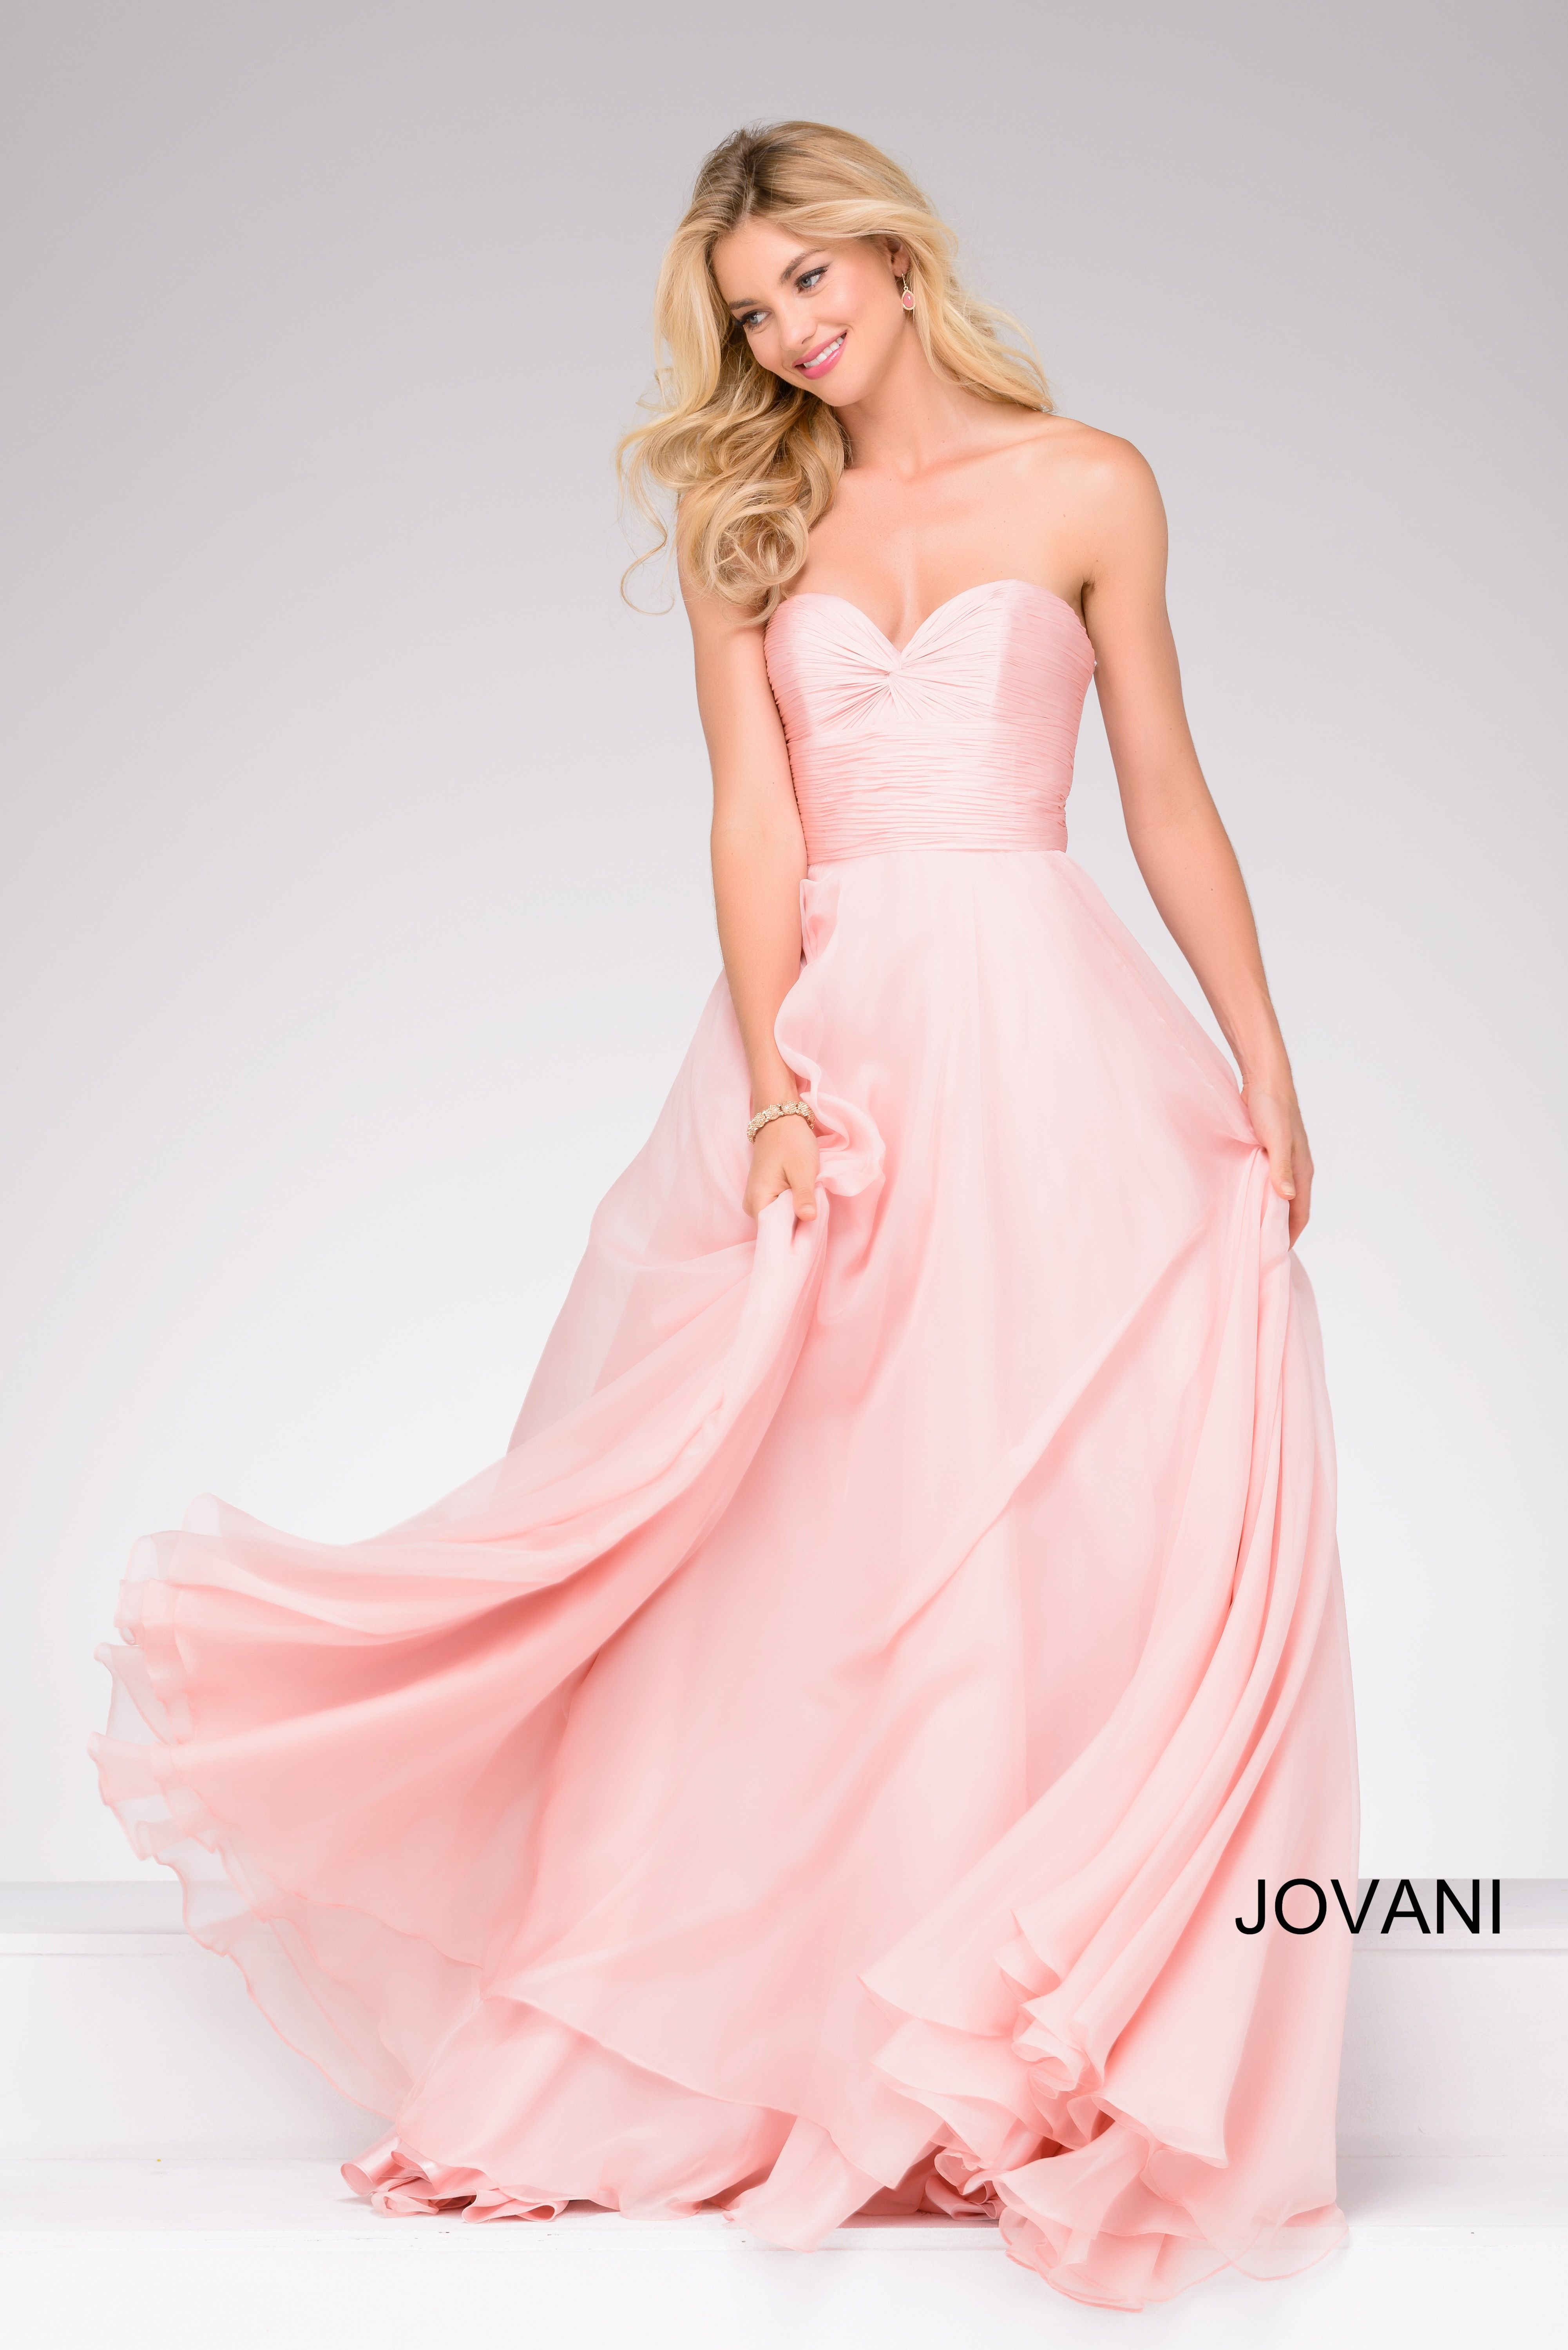 Look pretty in pink at prom 2k17 in Jovani 46060 available at ...